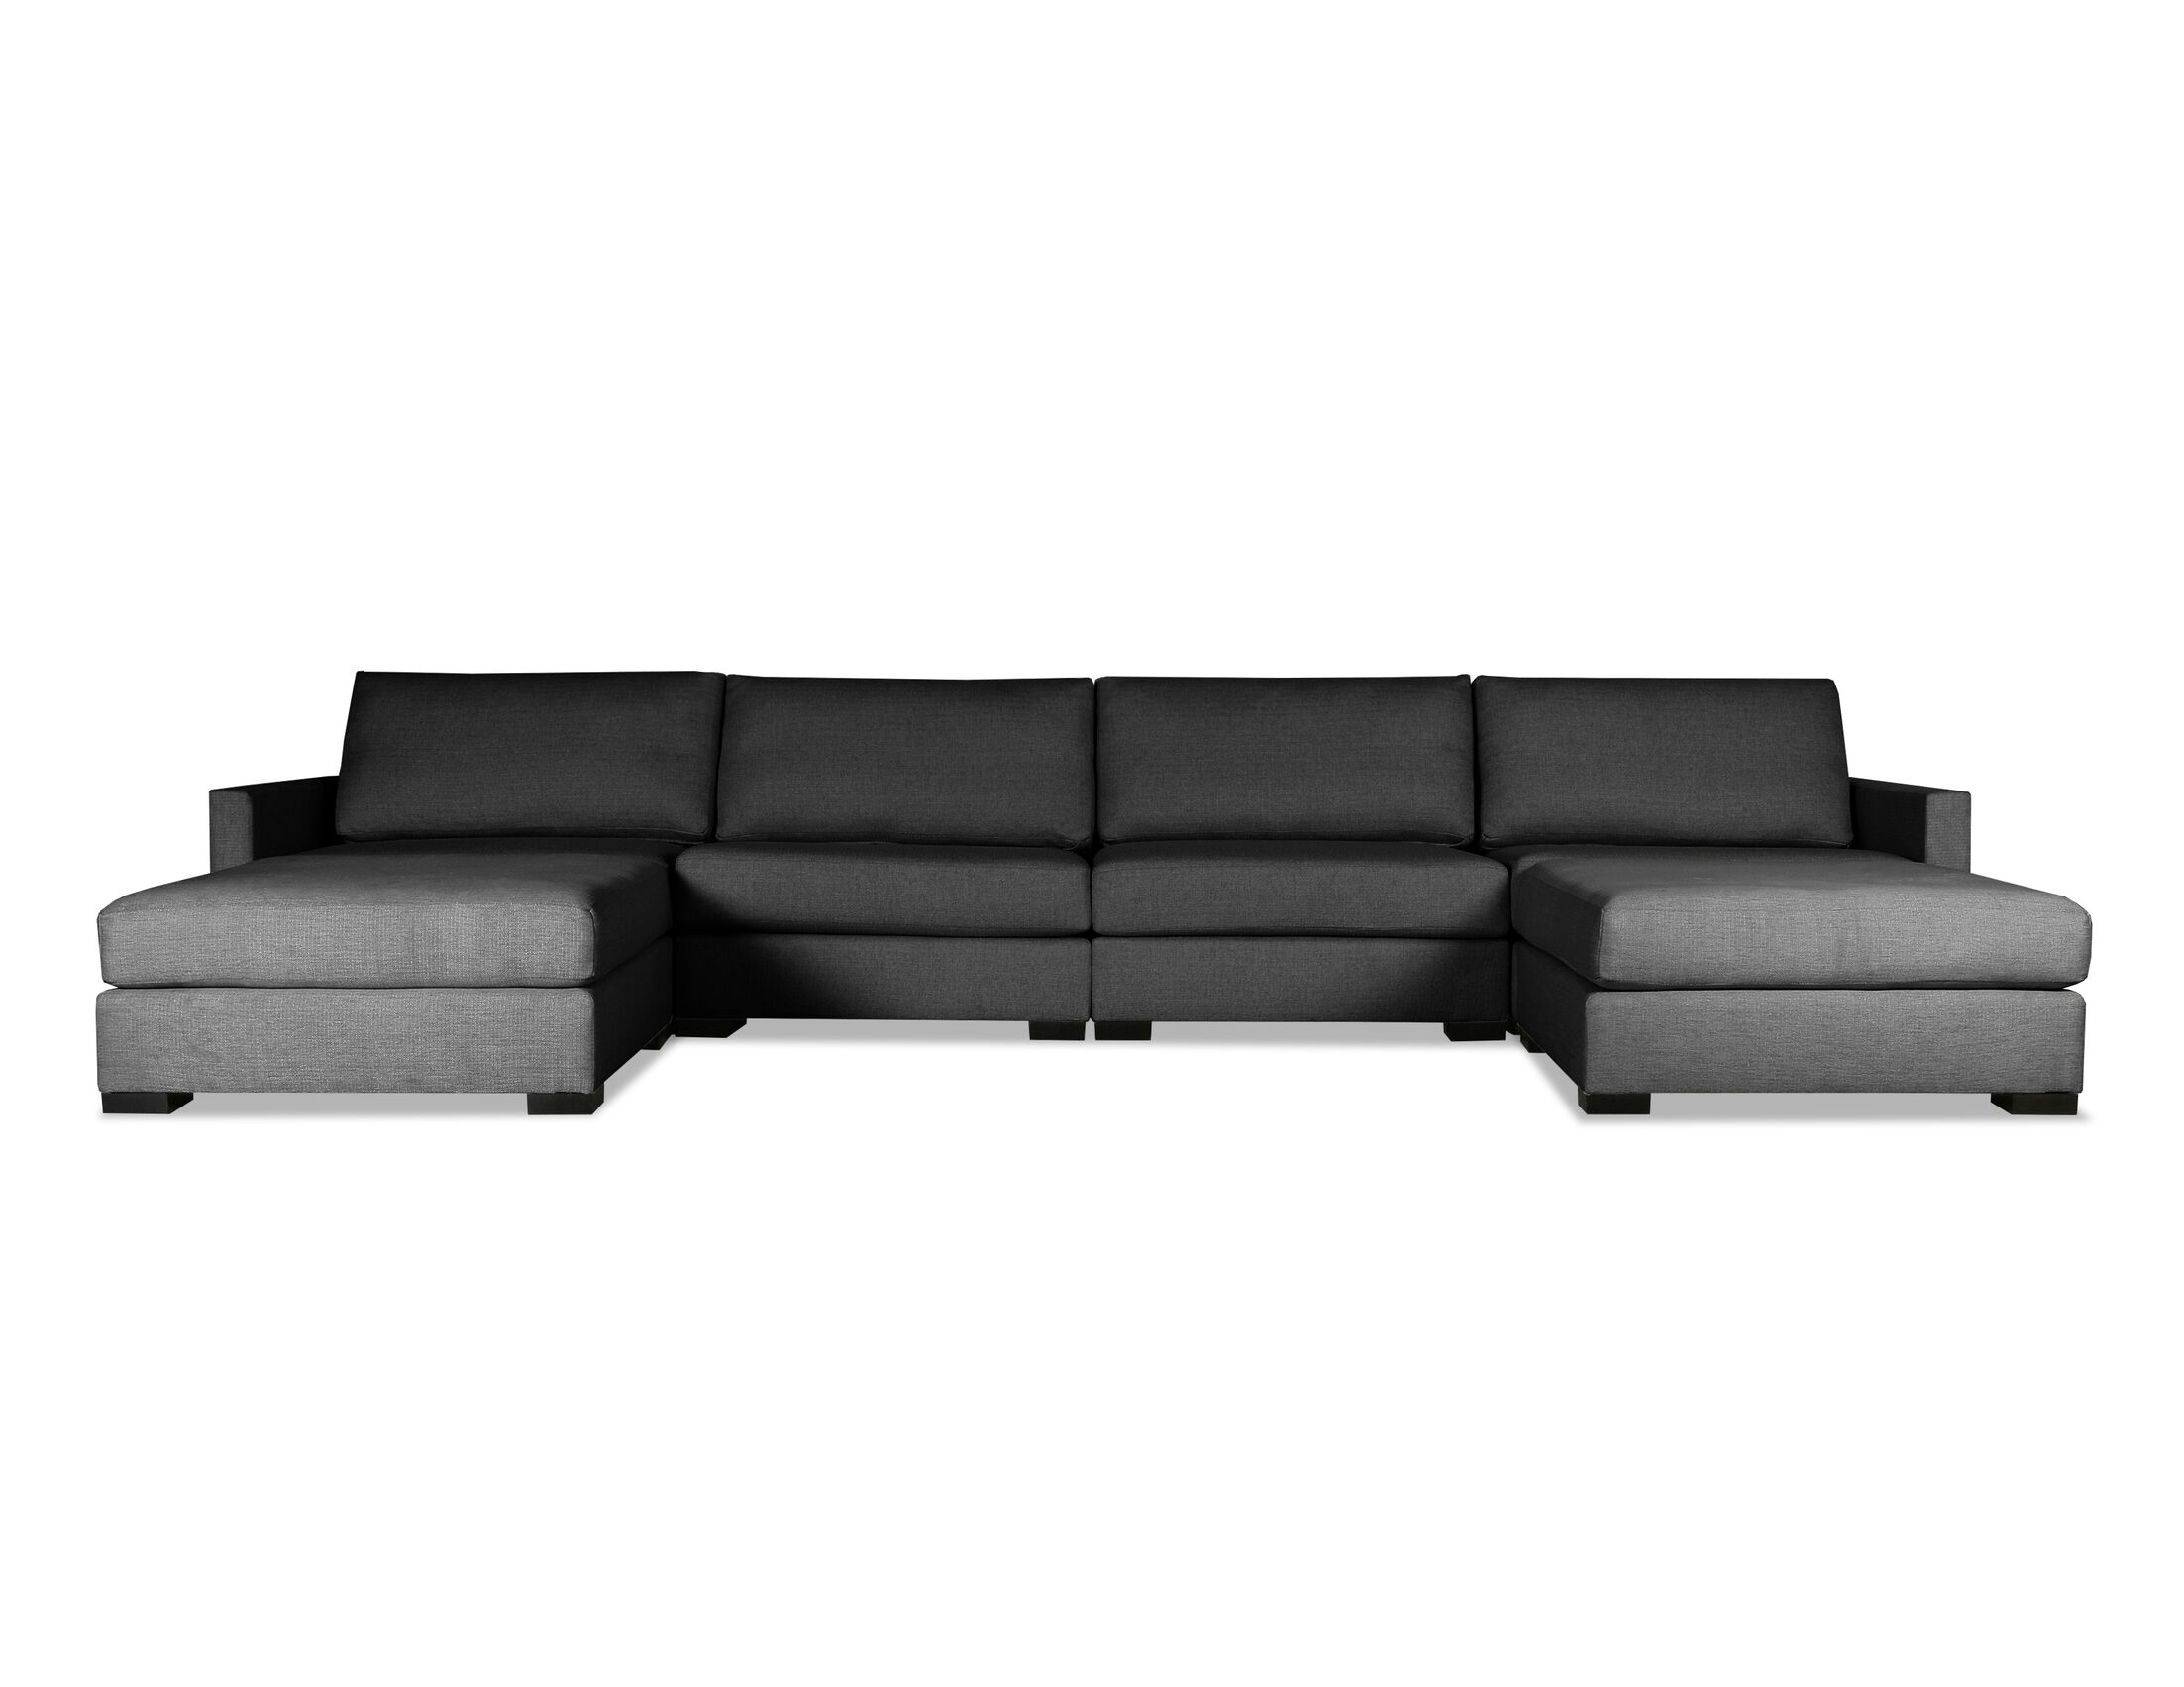 Secrest Plush Deep Modular Sectional with Ottoman Upholstery: Charcoal